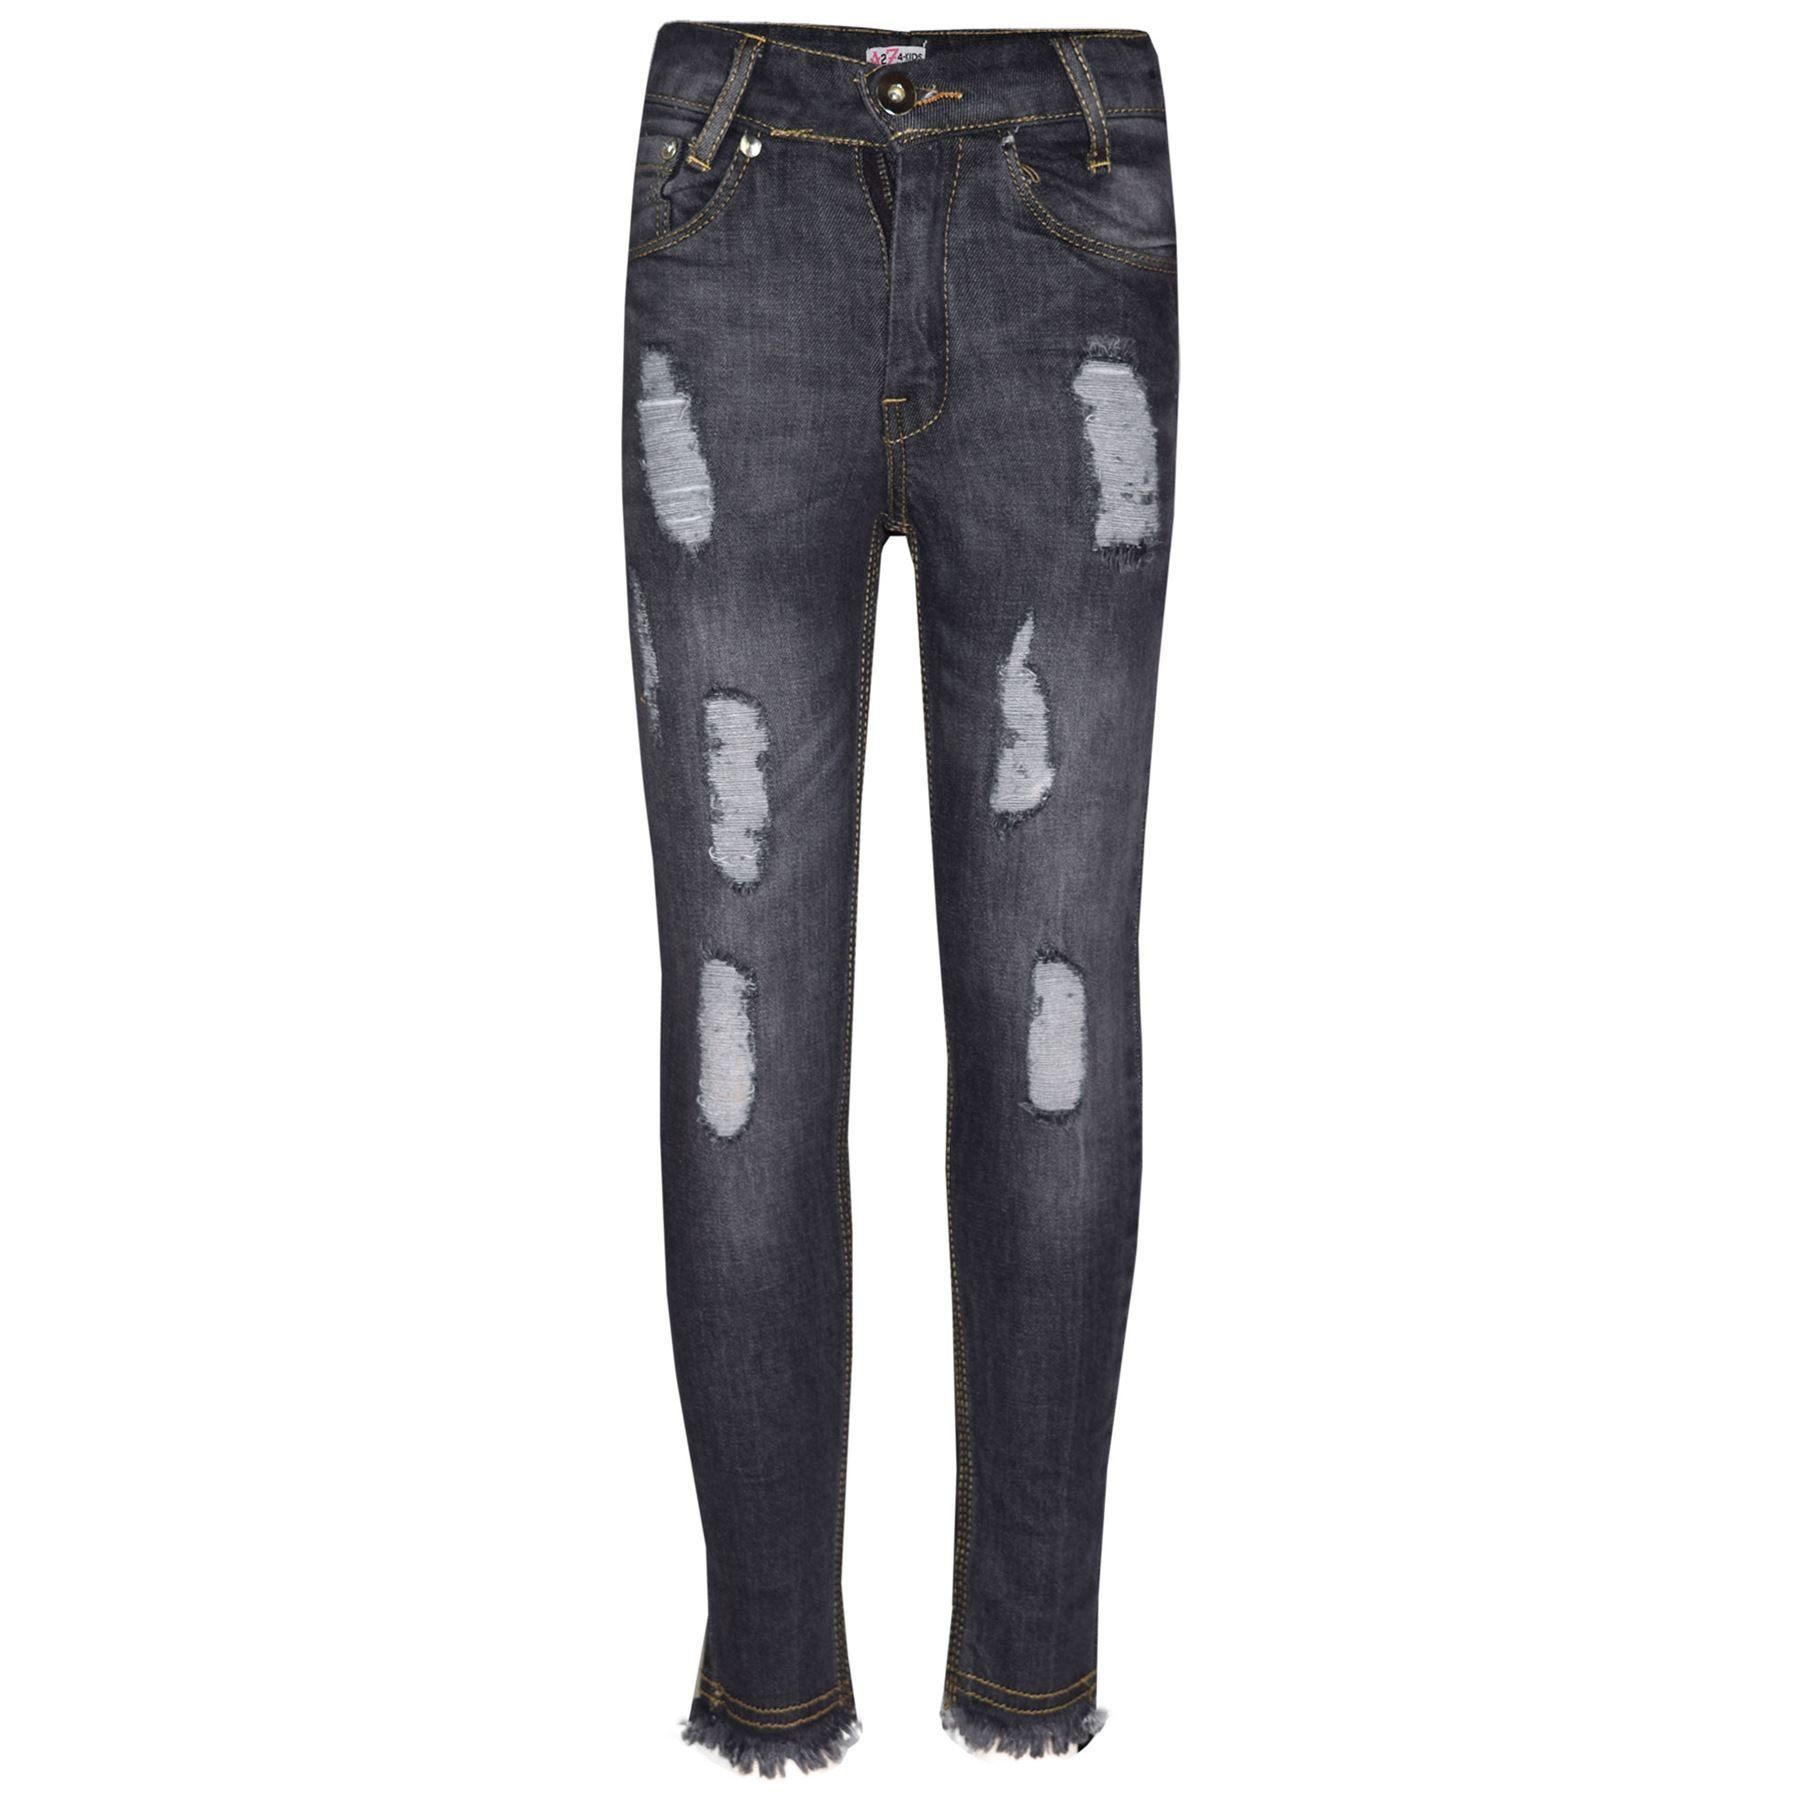 Girls Skinny Jeans Kids Stretchy Denim Ripped Rough Pants Trousers Jeggings 5-13 by A2Z 4 Kids (Image #1)